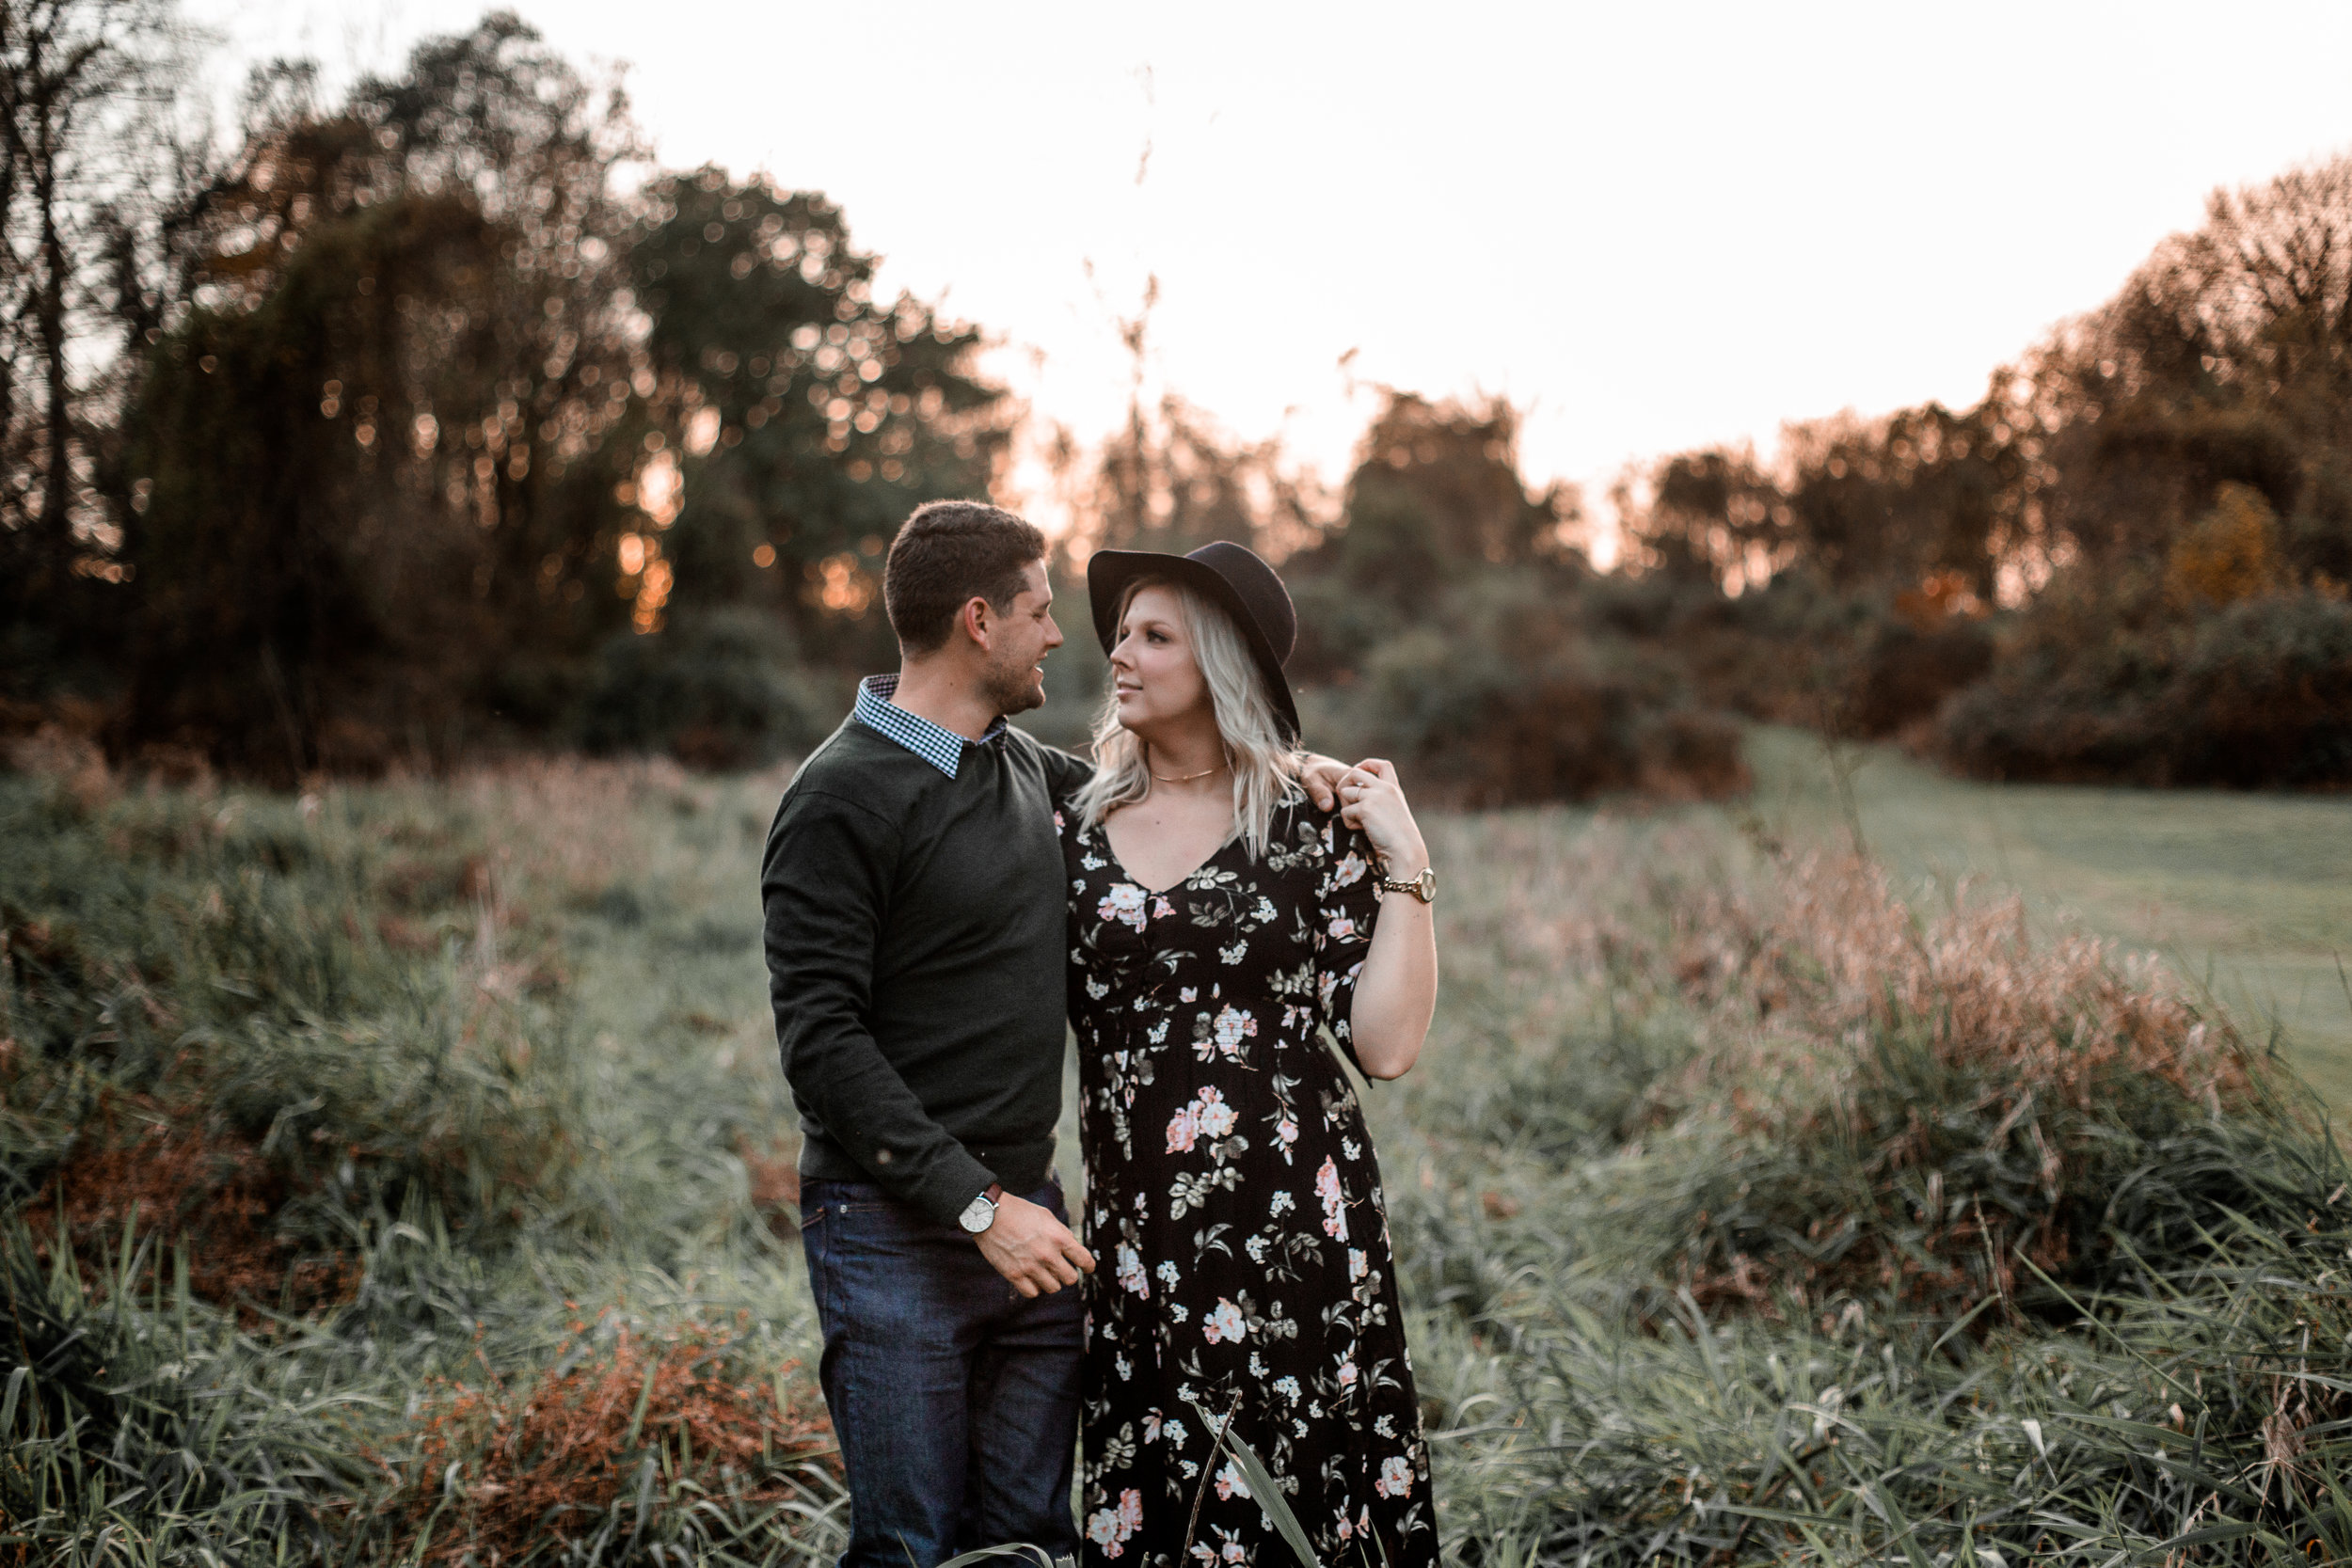 nicole-daacke-photography-carefree-bohemian-lancaster-pa-pennsylvania-engagement-photos-engagement-session-golden-sunset-adventure-session-in-lancaster-pa-lancaster-pa-outdoor-wedding-photographer-37.jpg